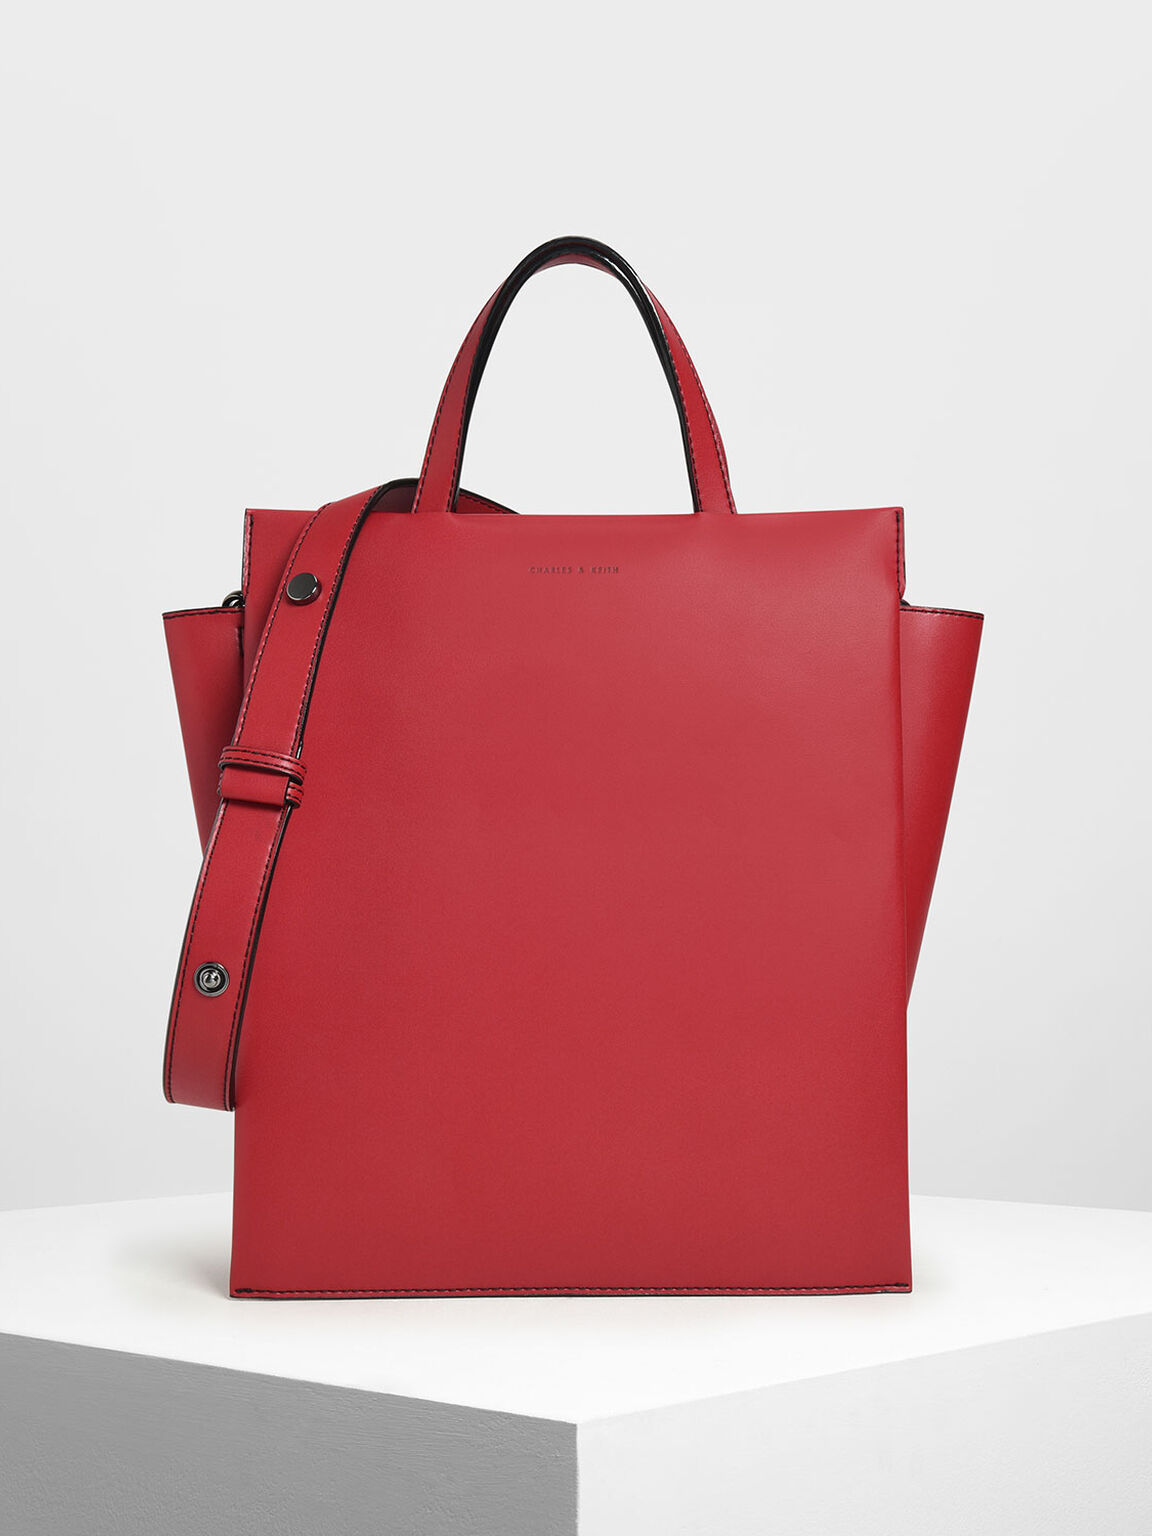 Double Handle Chain Link Tote Bag, Red, hi-res